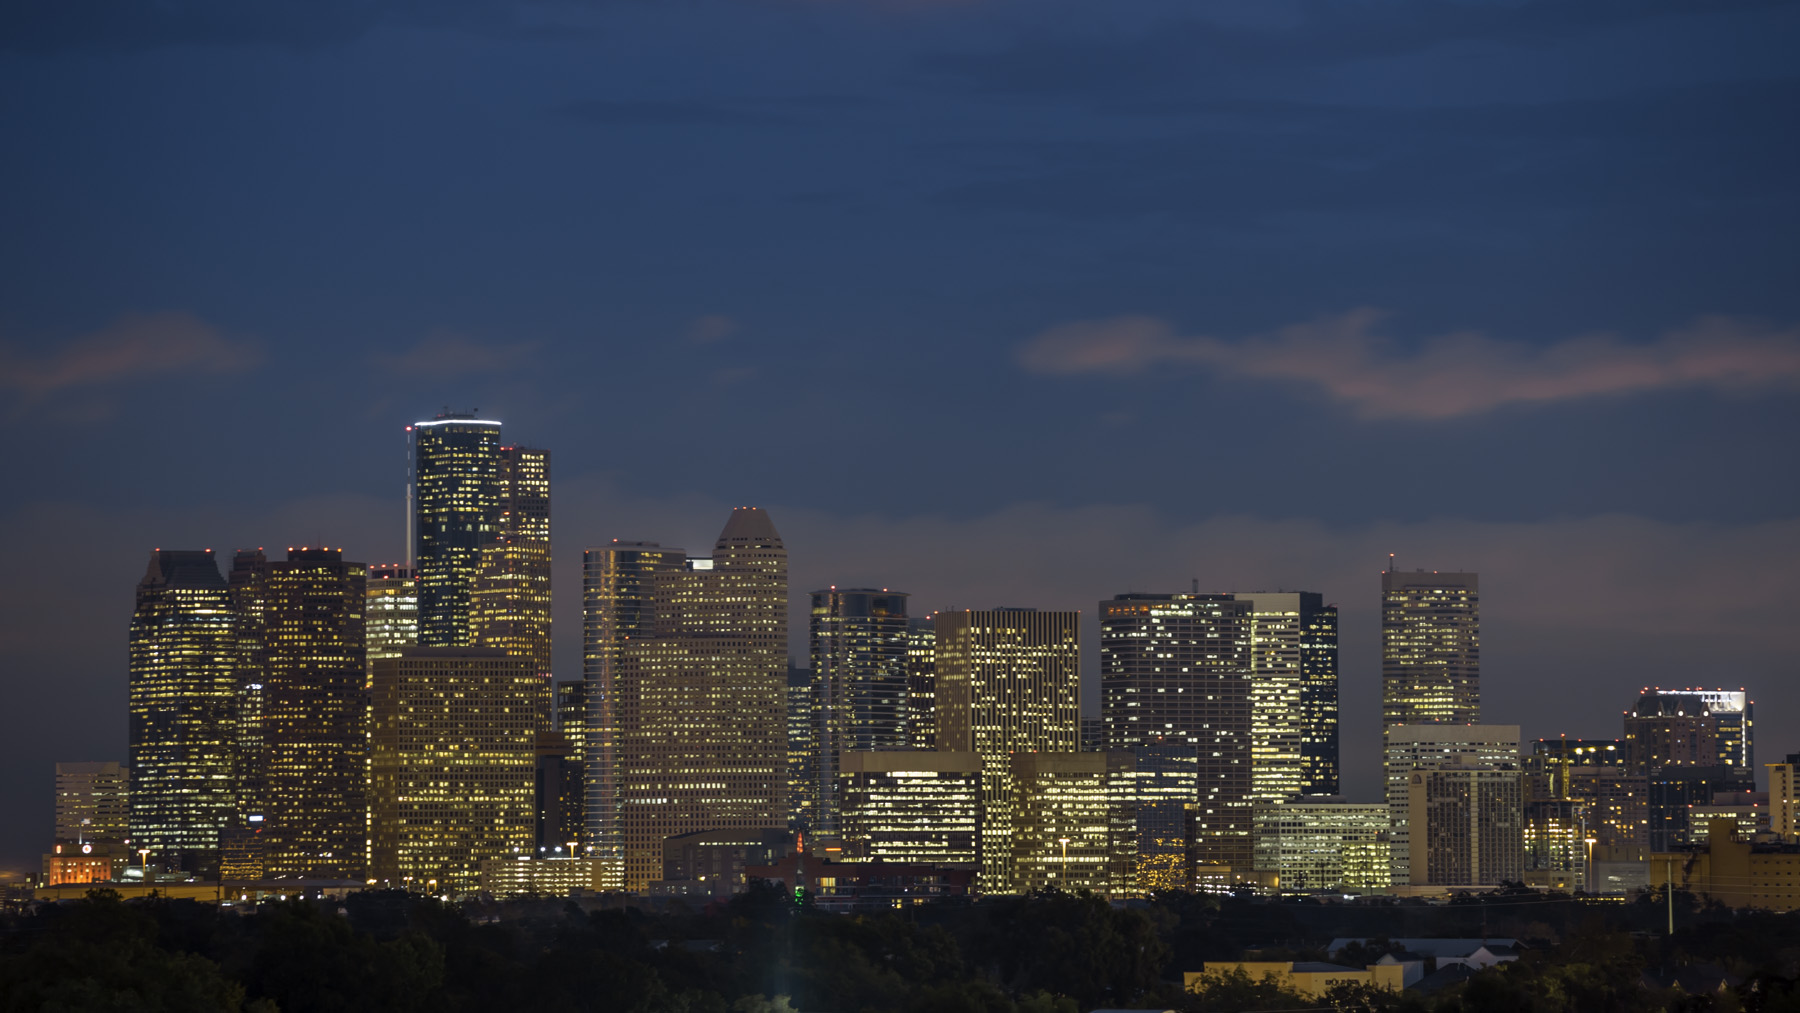 Downtown-Houston-Blue-Hour-II-Mabry-Campbell